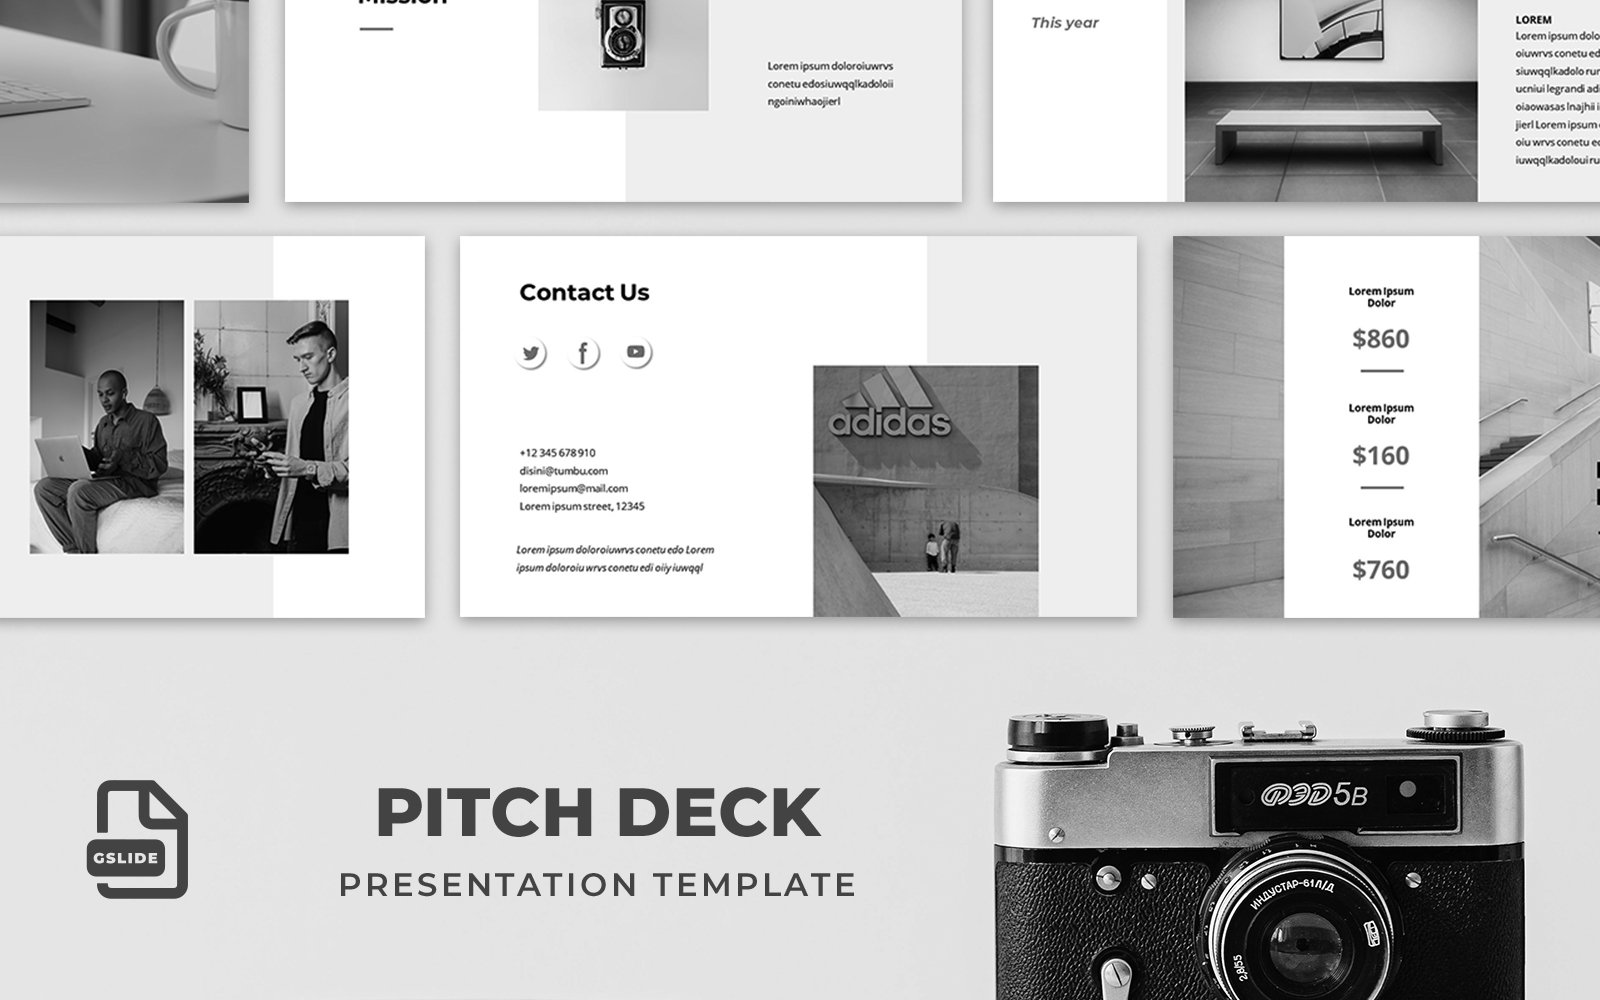 Pitch Deck - Presentation Template Google Slides 124195